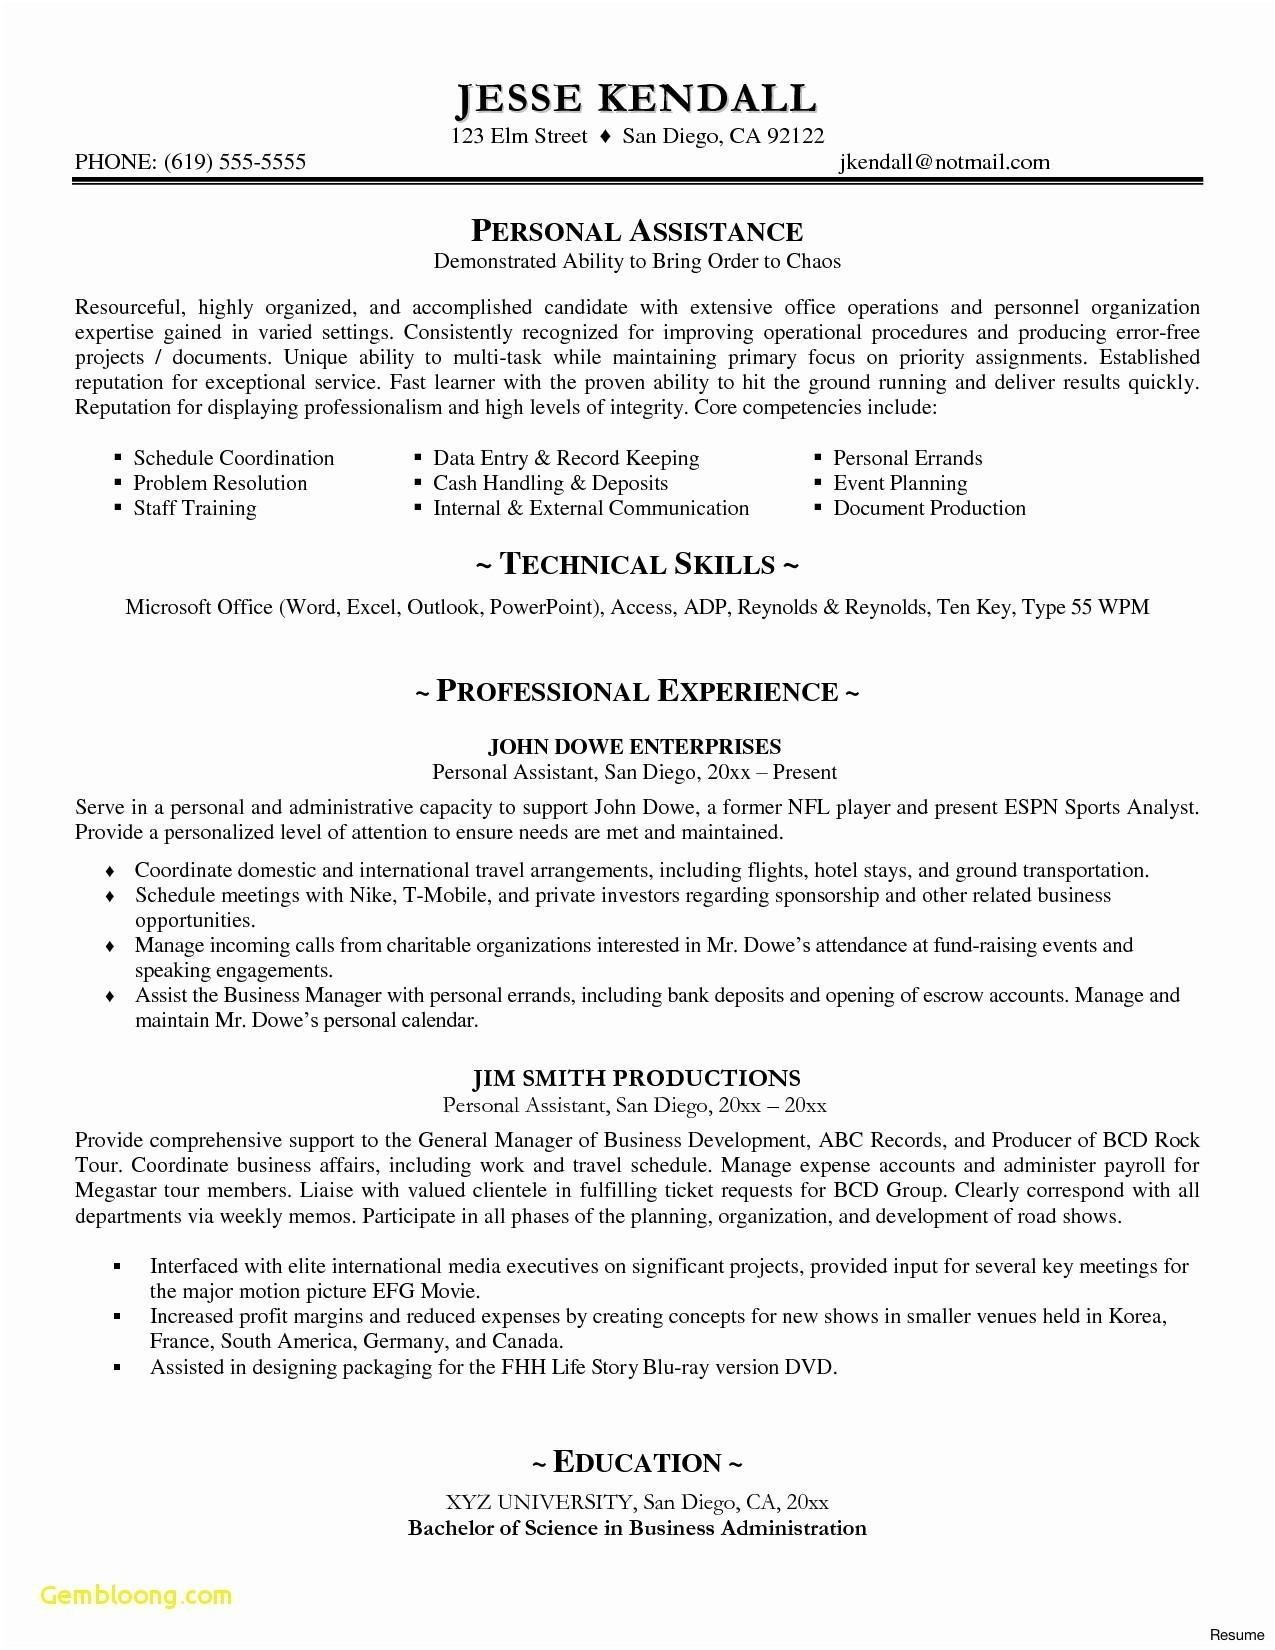 Free Download Resume Samples.doc